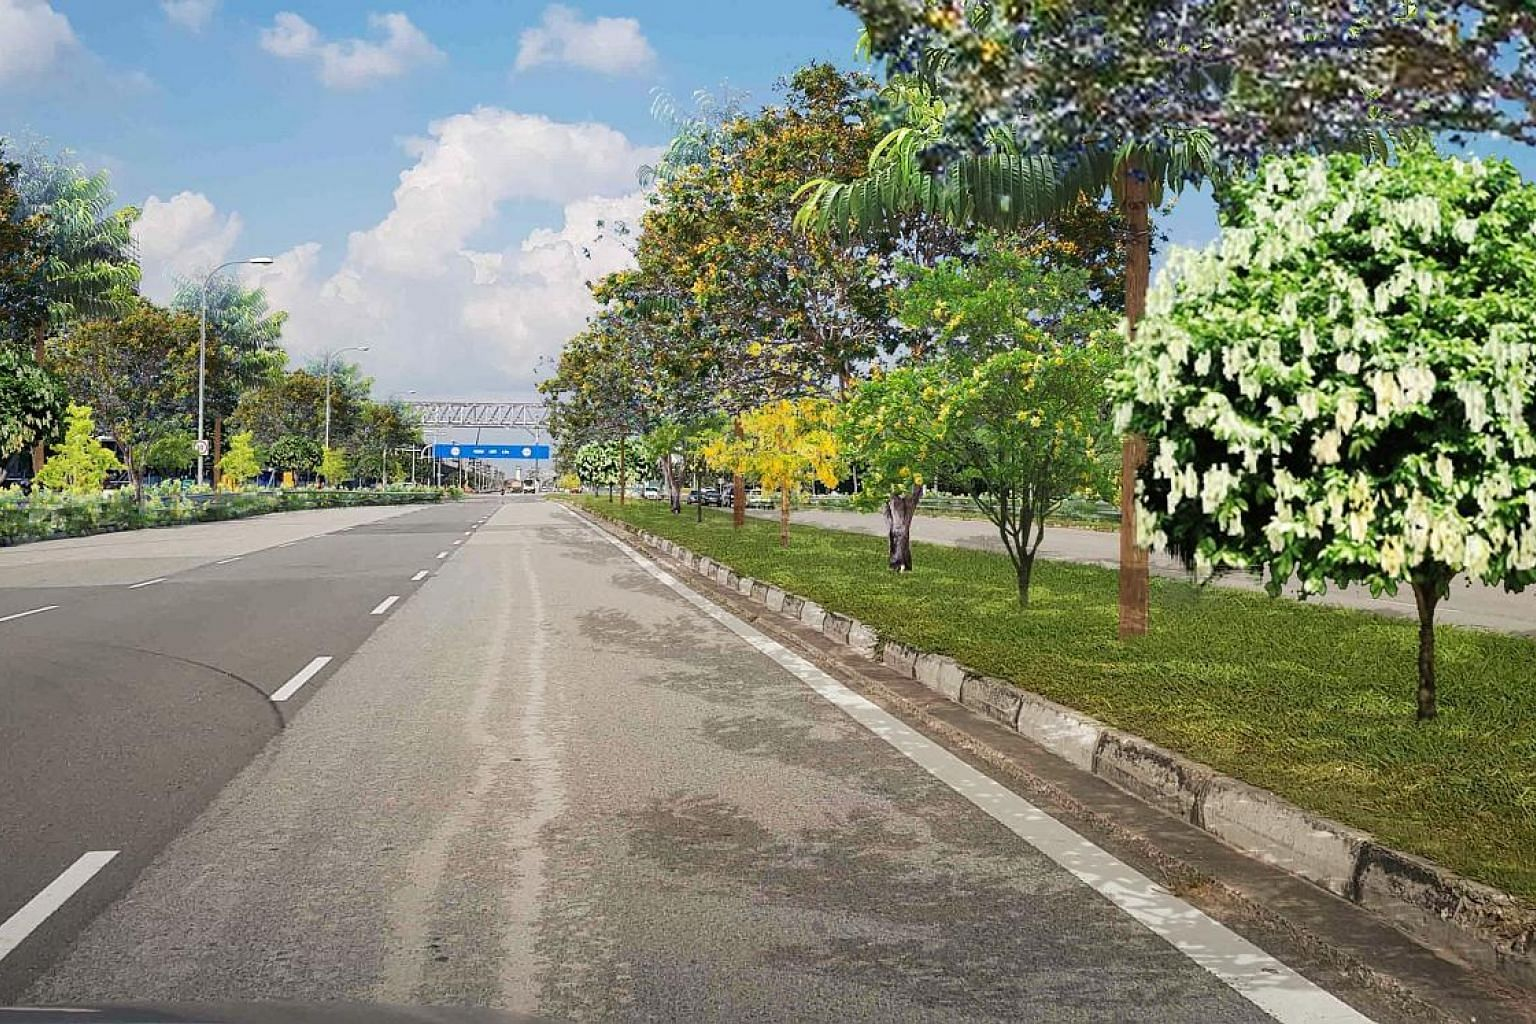 Above: An artist's impression of trees lining Banyan Avenue on Jurong Island, under a greening initiative to plant 30,000 trees on the island. Left: The existing road. PHOTOS: JTC, NPARKS